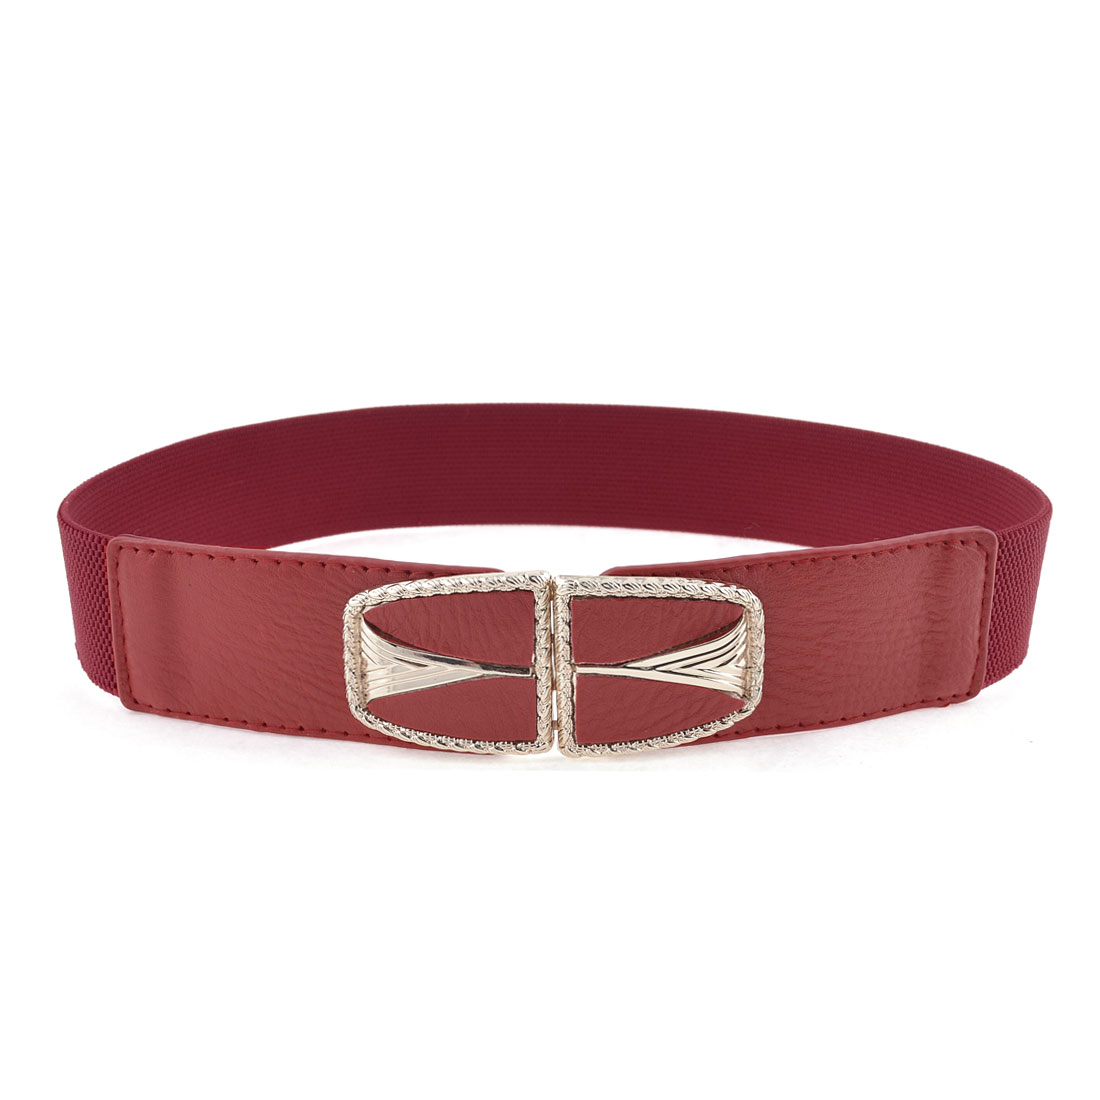 Women Litchi Faux Leather Buckle 3.7cm Width Textured Stretch Cinch Belt Red